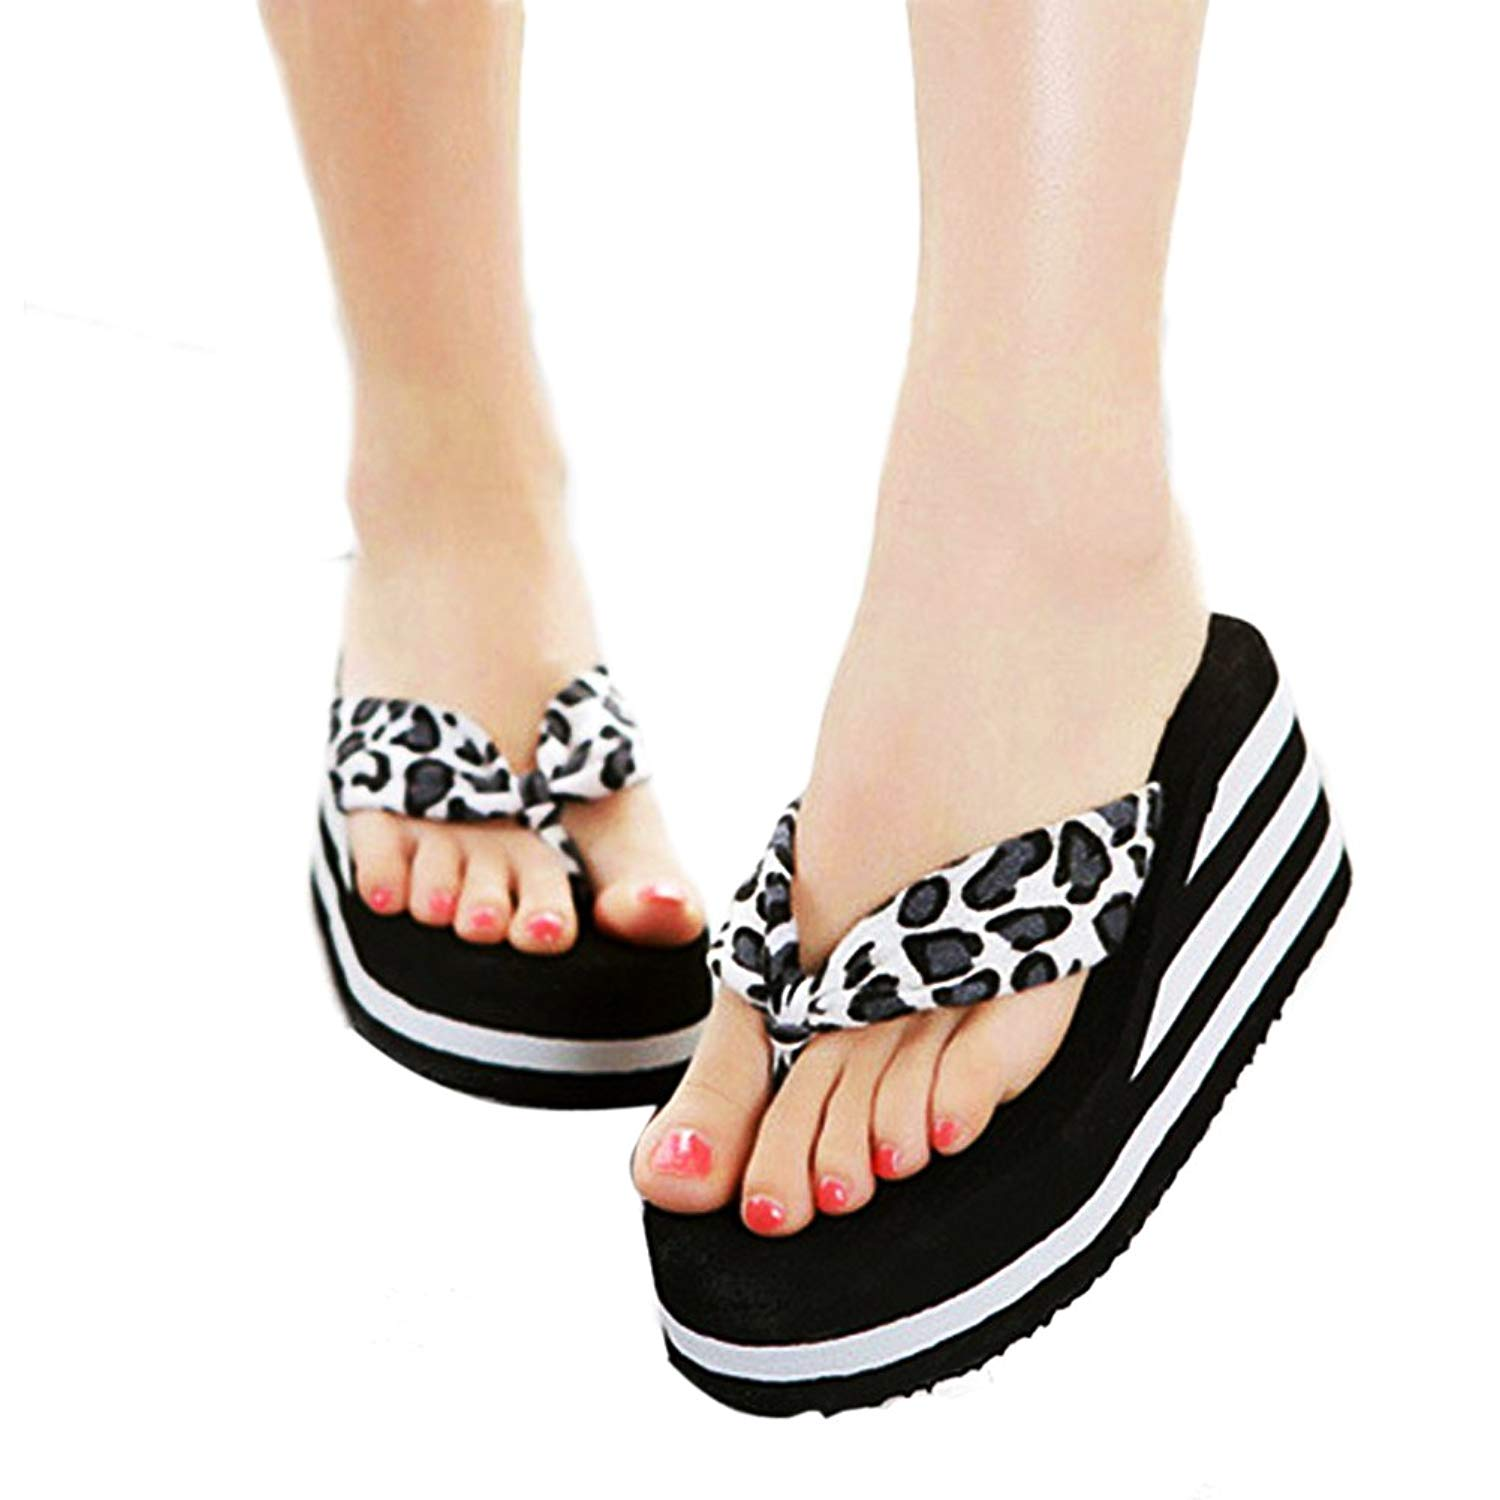 71516ac9cdc Get Quotations · HOBULL Women s Platform Flip-Flop Slippers Thong Sandals  Open Toe Wedge Slippers